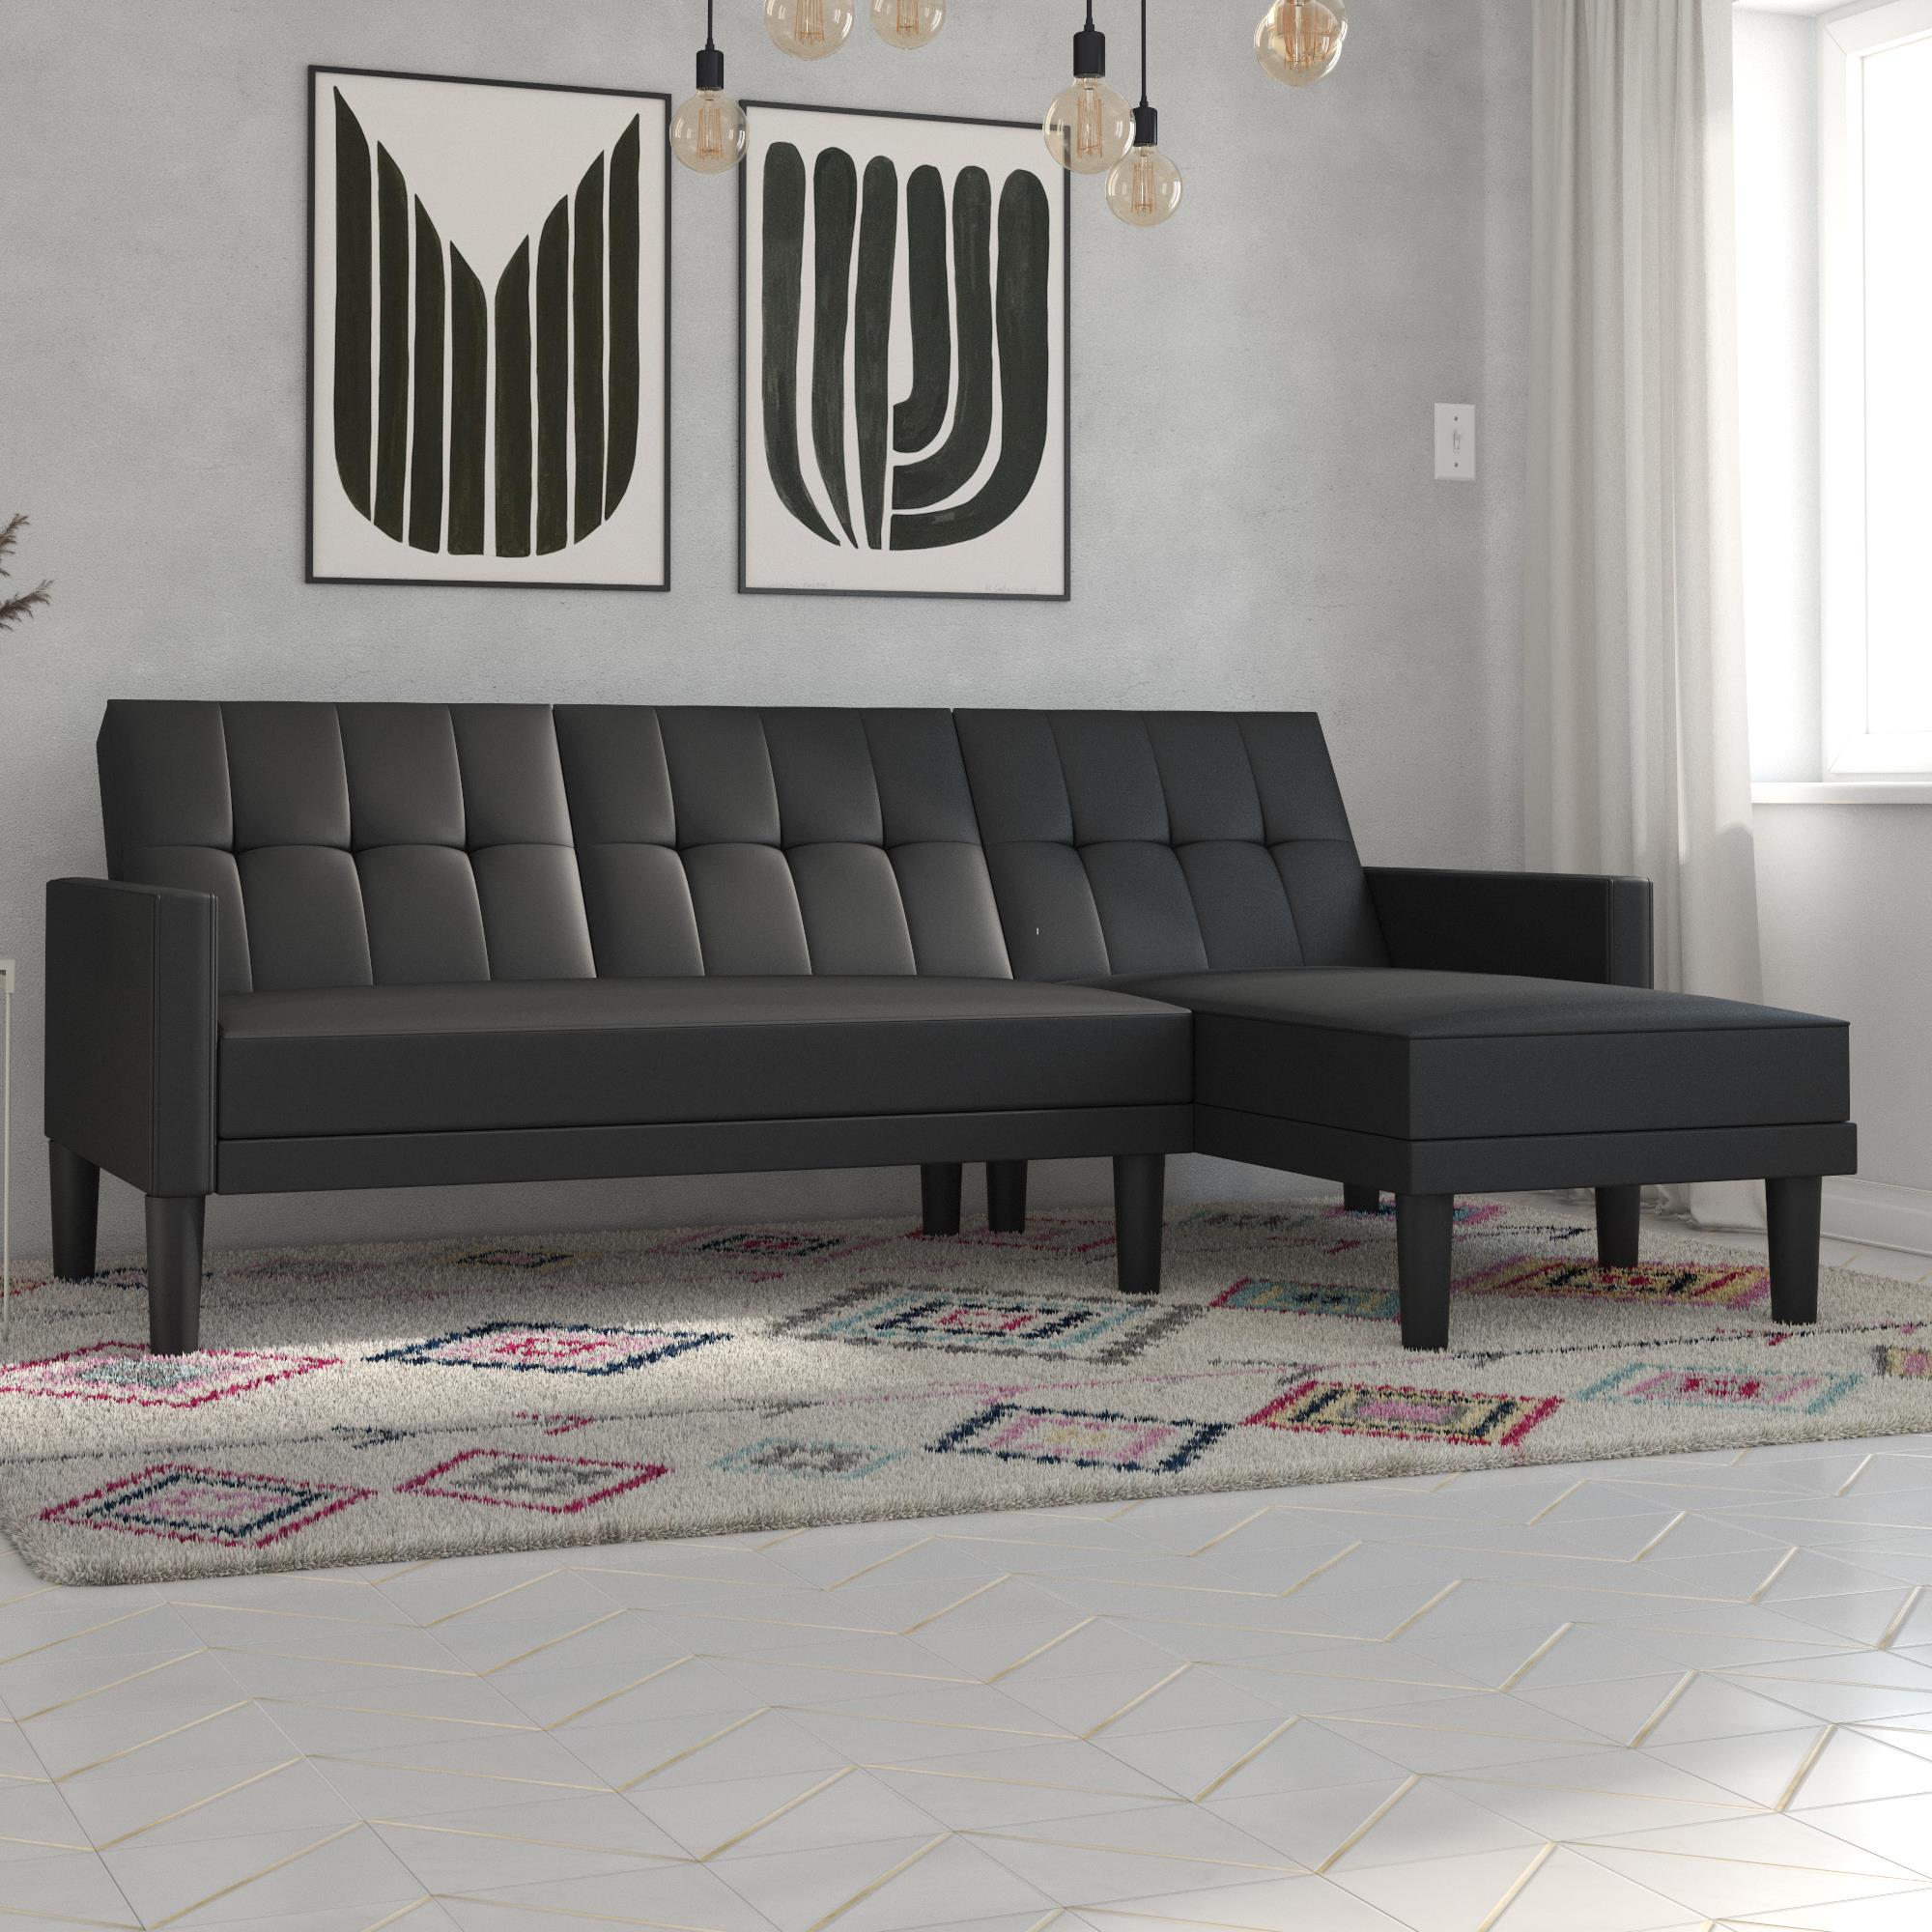 DHP Haven Sectional Futon Sofa Couch, Tufted Design, Multiple Colors